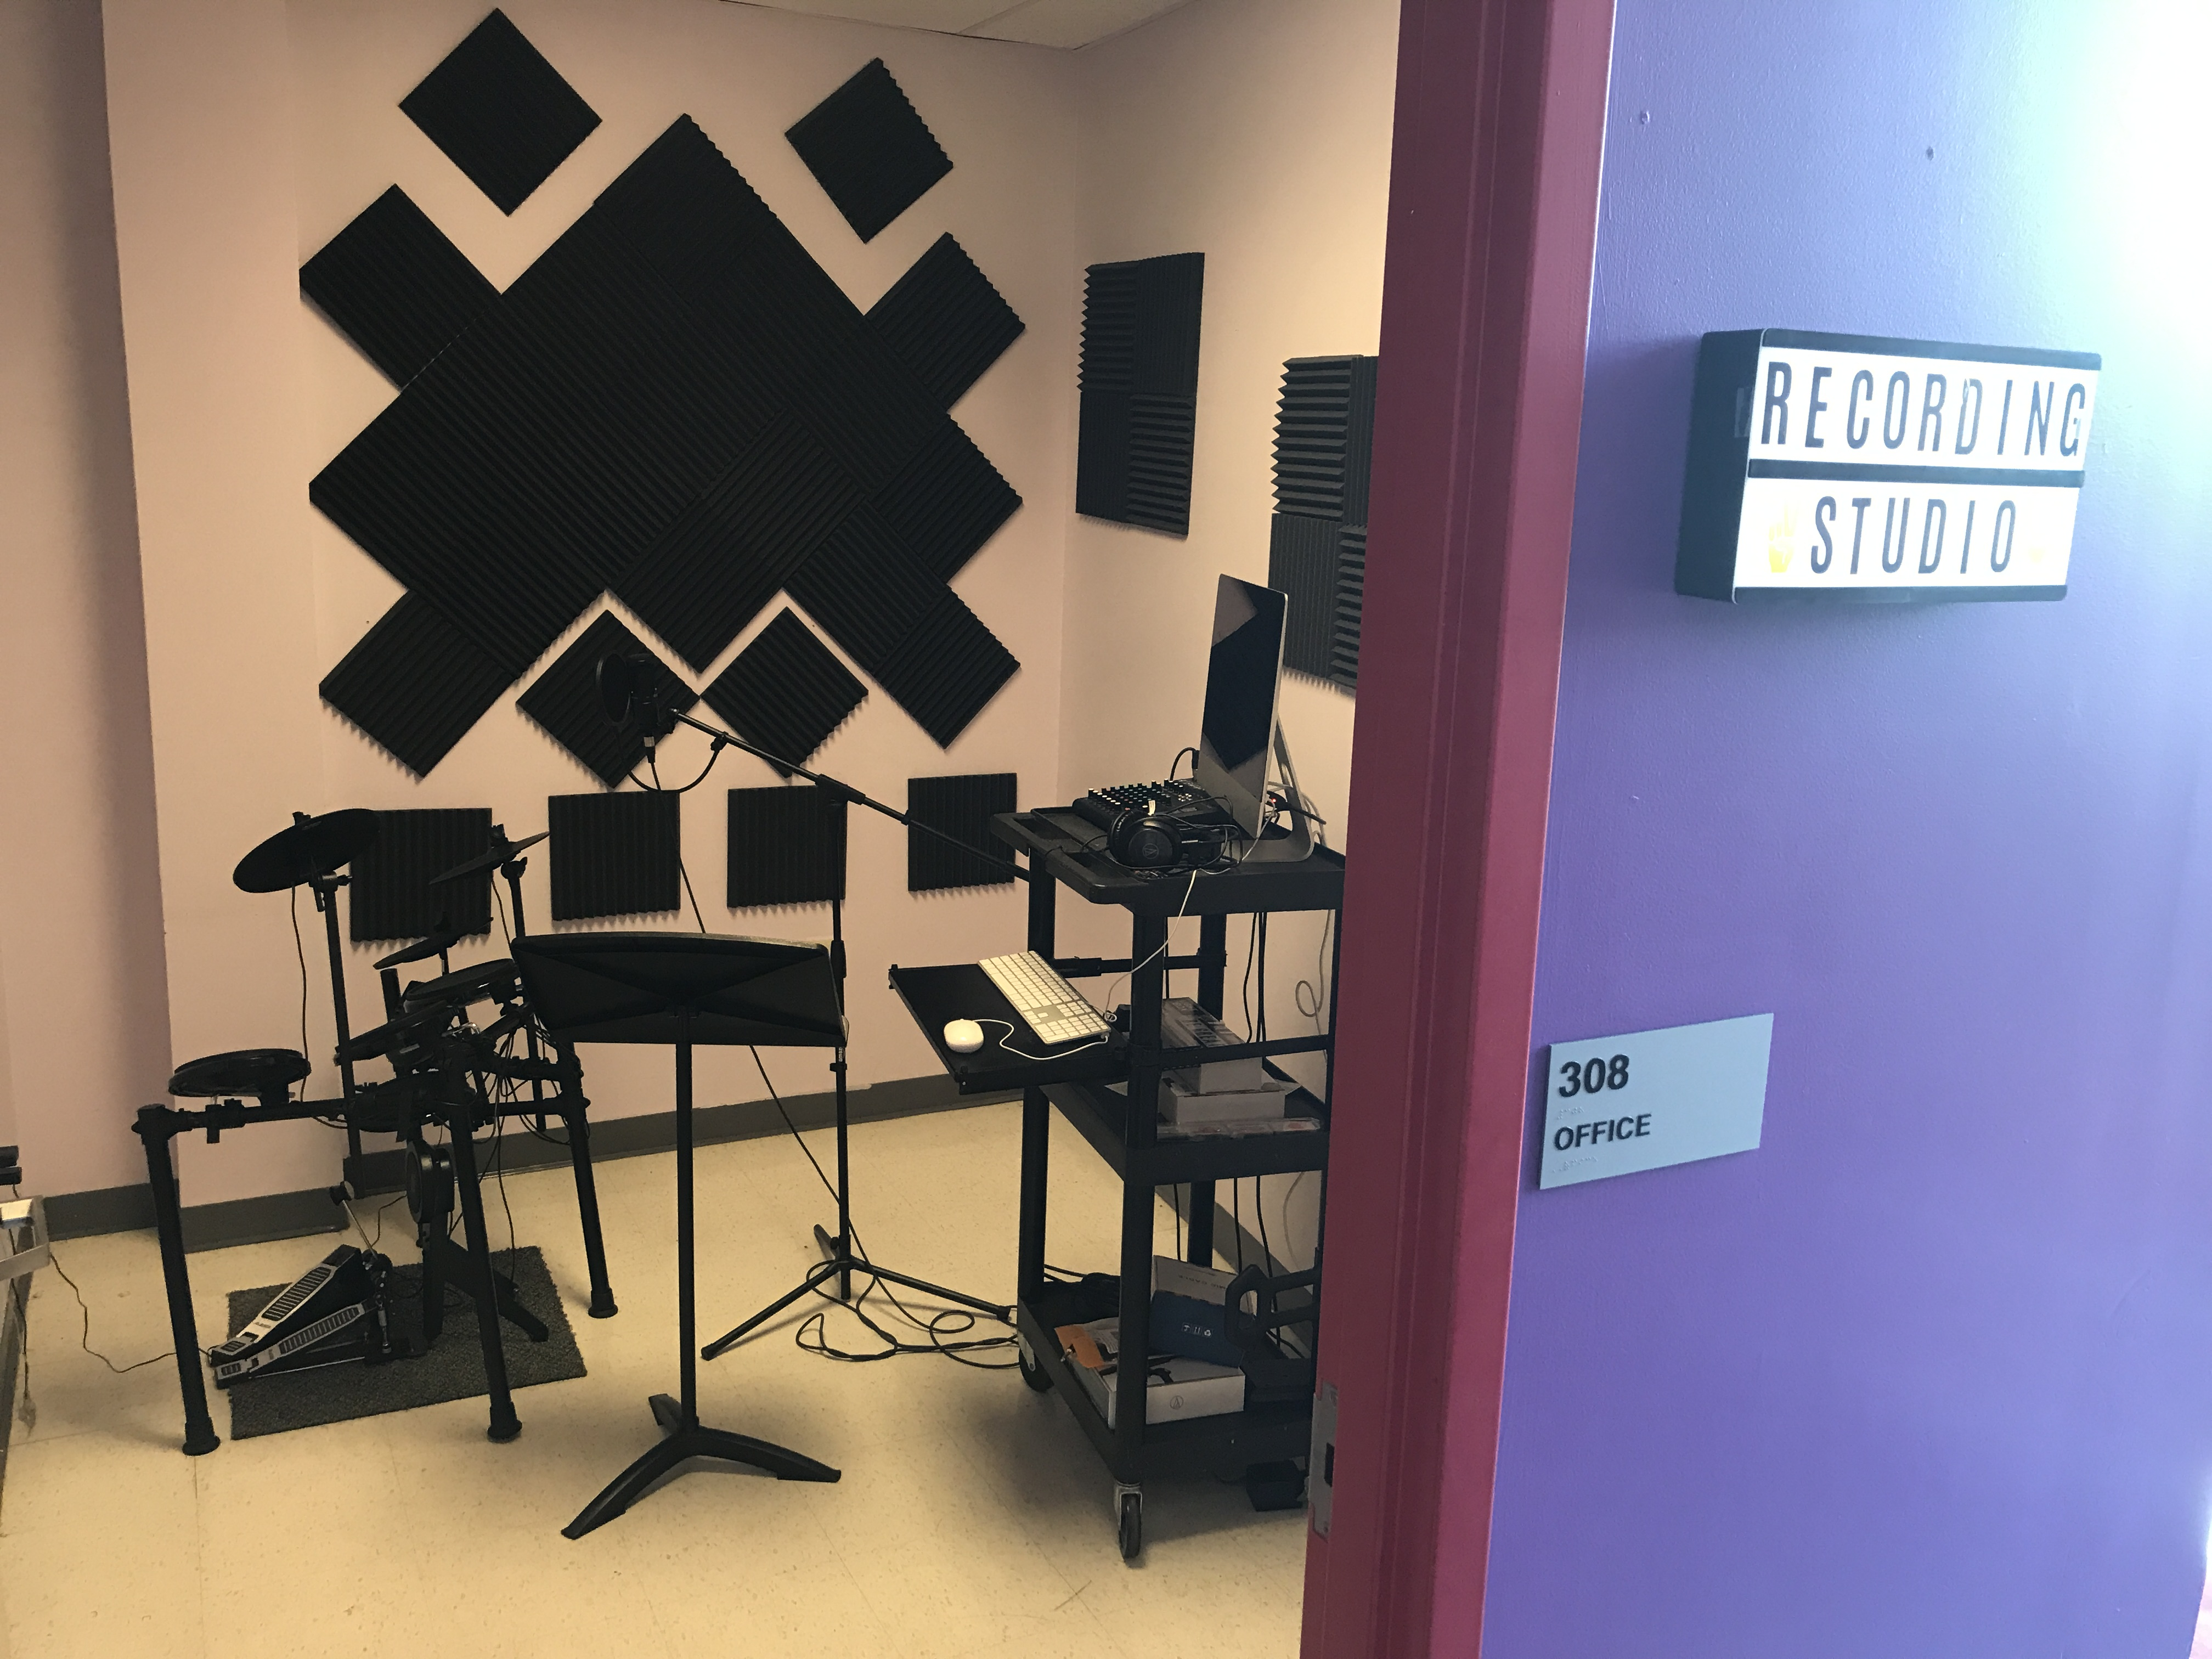 Students at First Philadelphia Preparatory Charter School voted to build a music studio with $2,500 in grant funds.